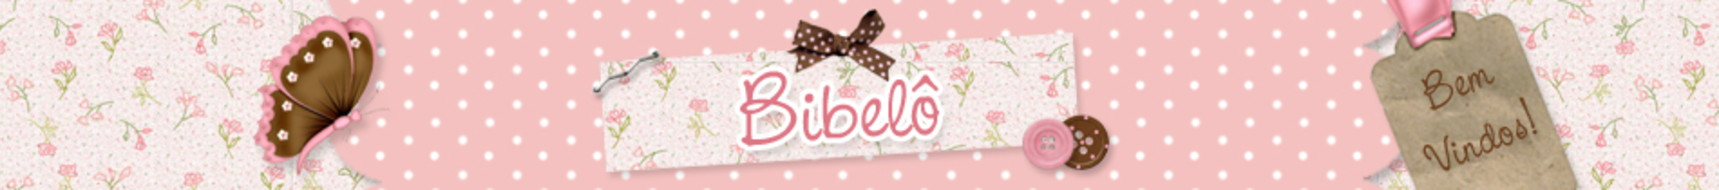 Bibel